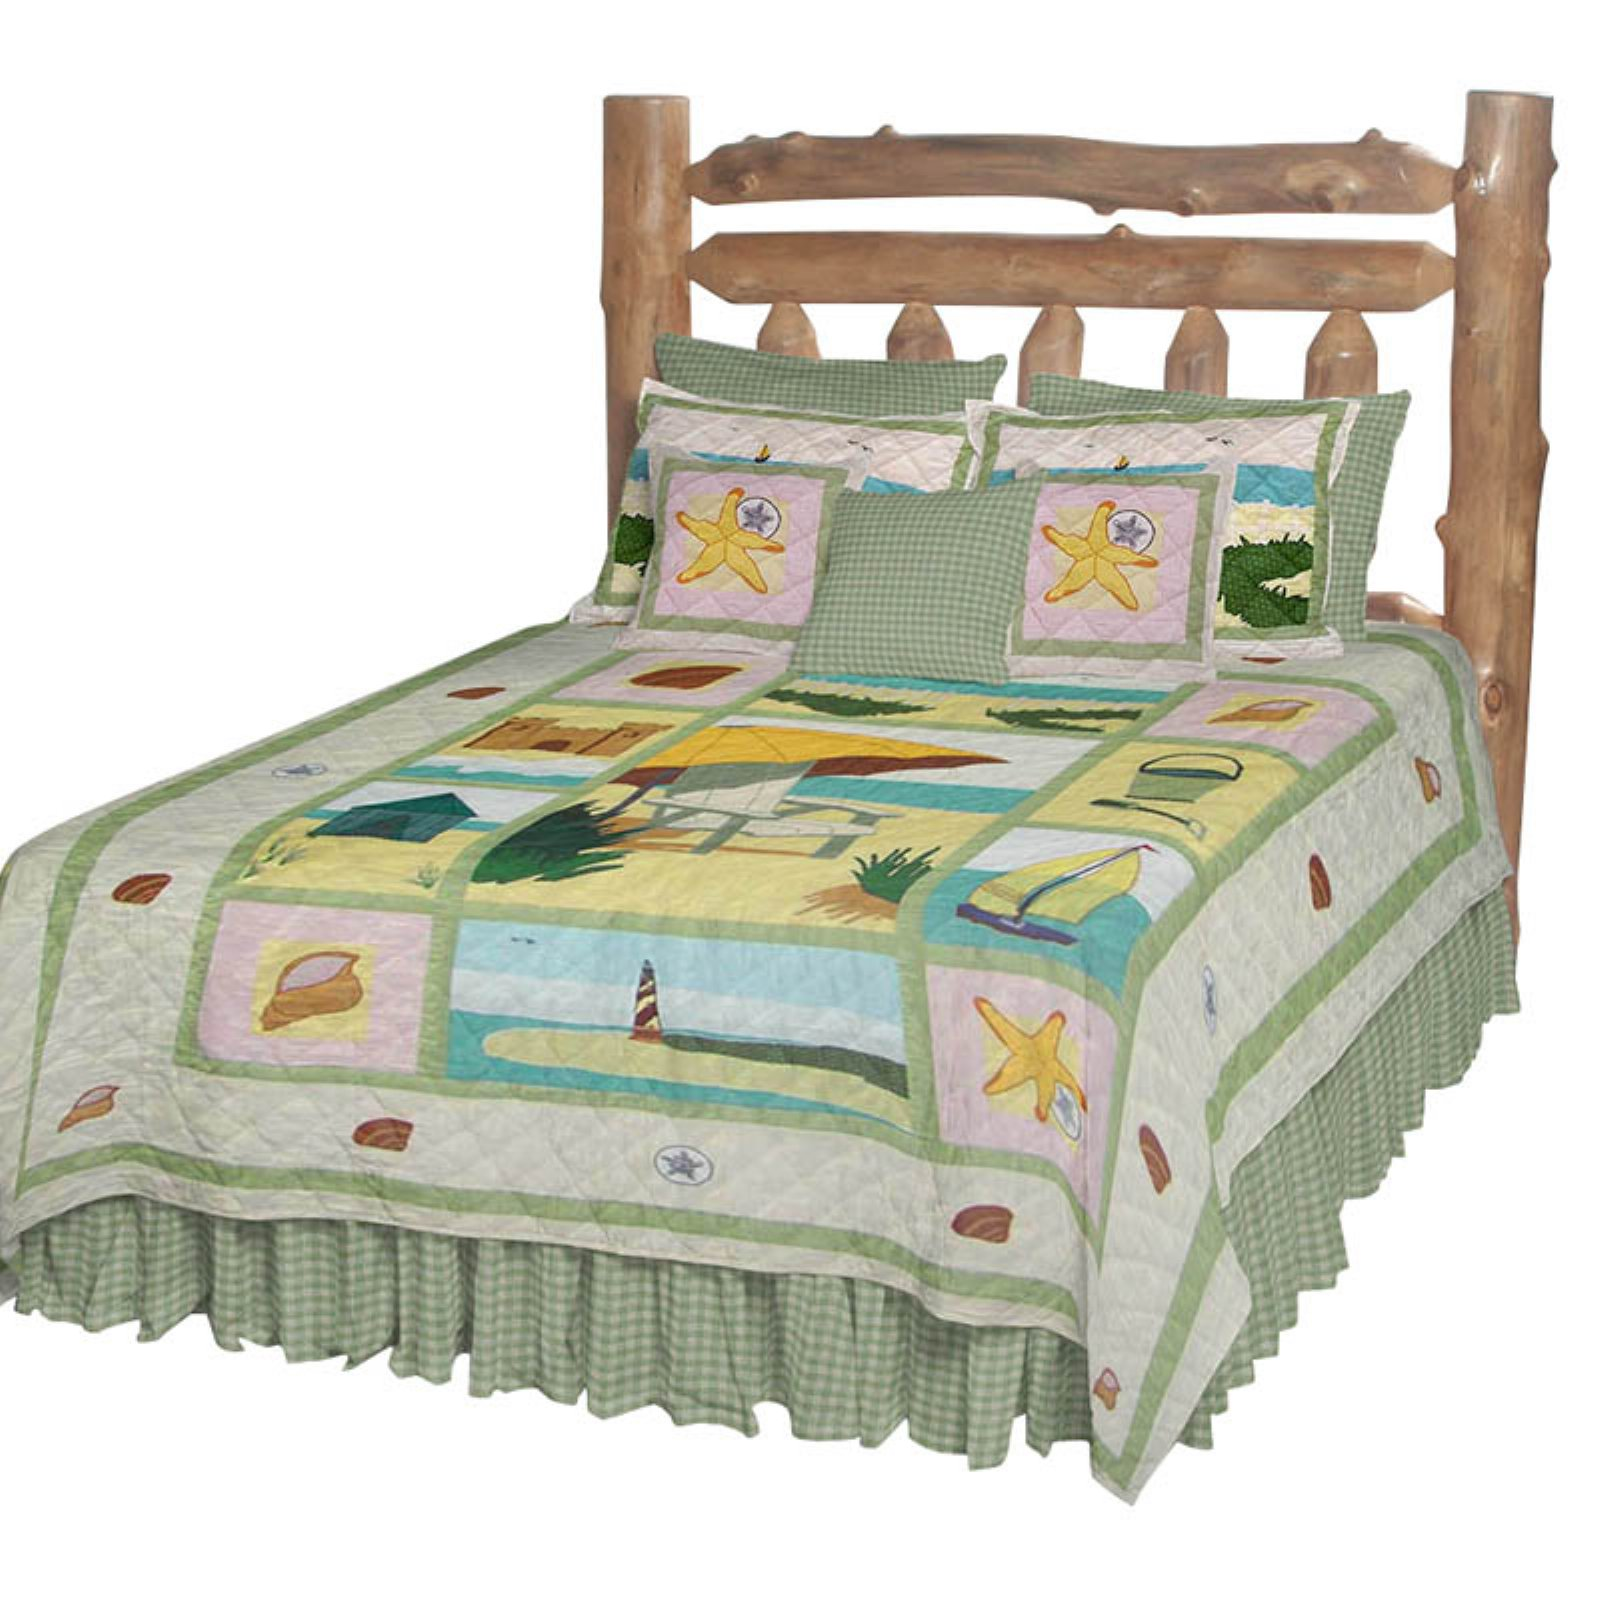 Patch Magic QTOCVW Ocean View, Quilt Twin 65 x 85 inch